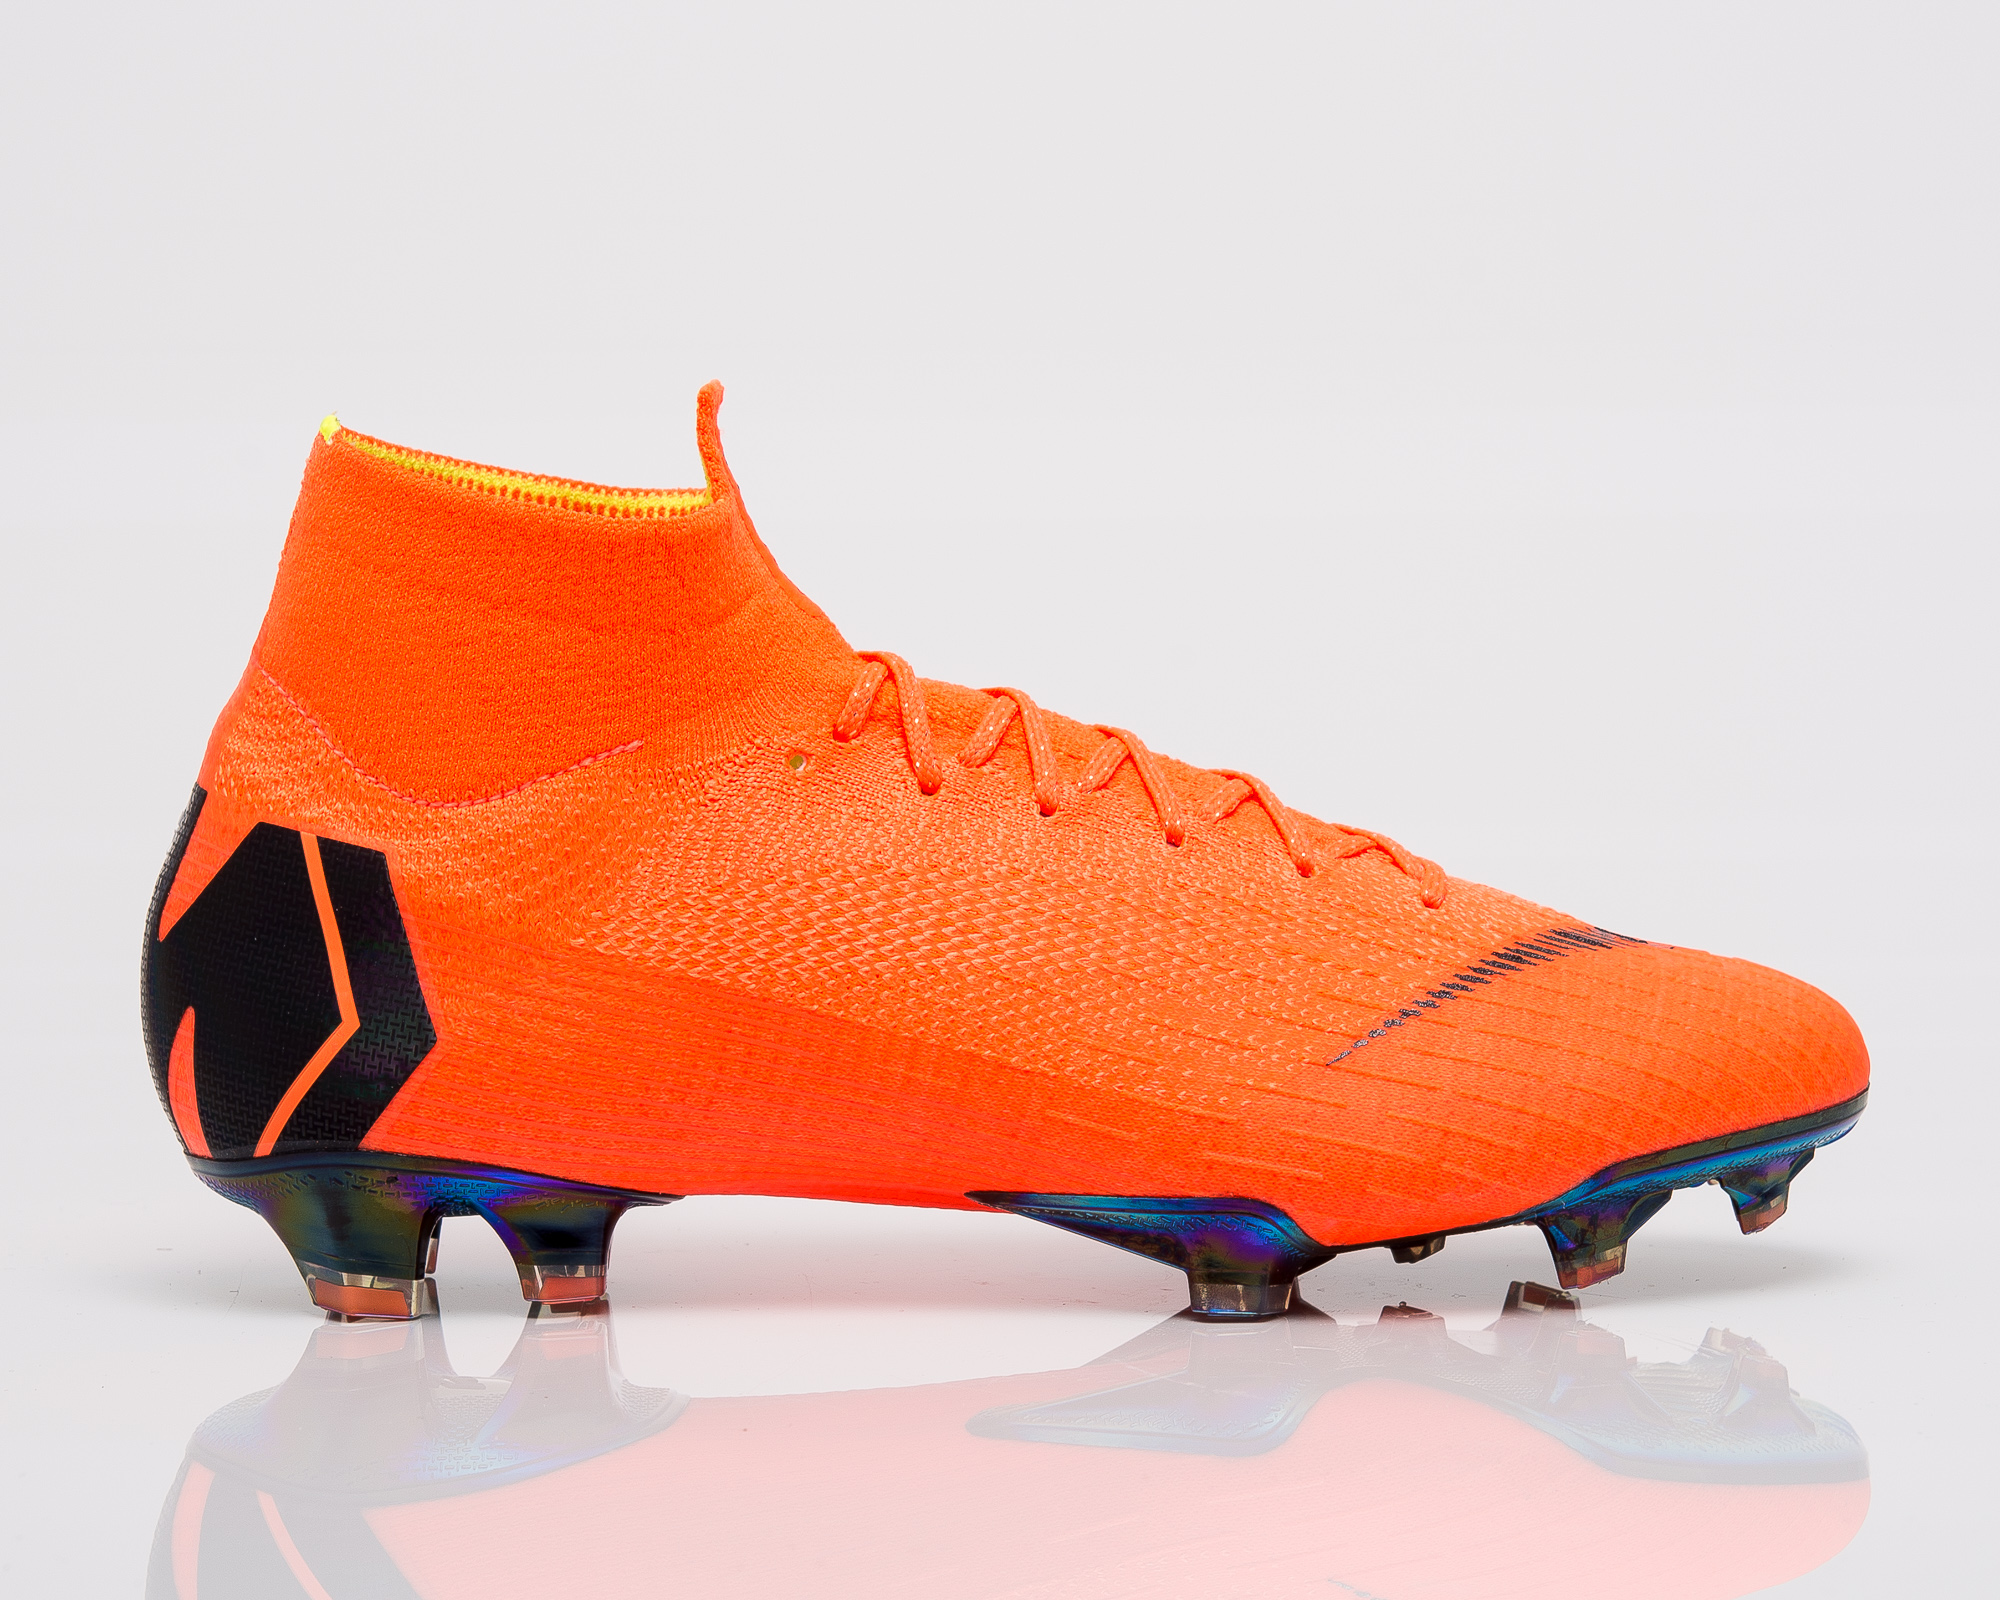 78b5f1667 ... netherlands nike mercurial superfly 360 elite fg 7fed7 1a1ef